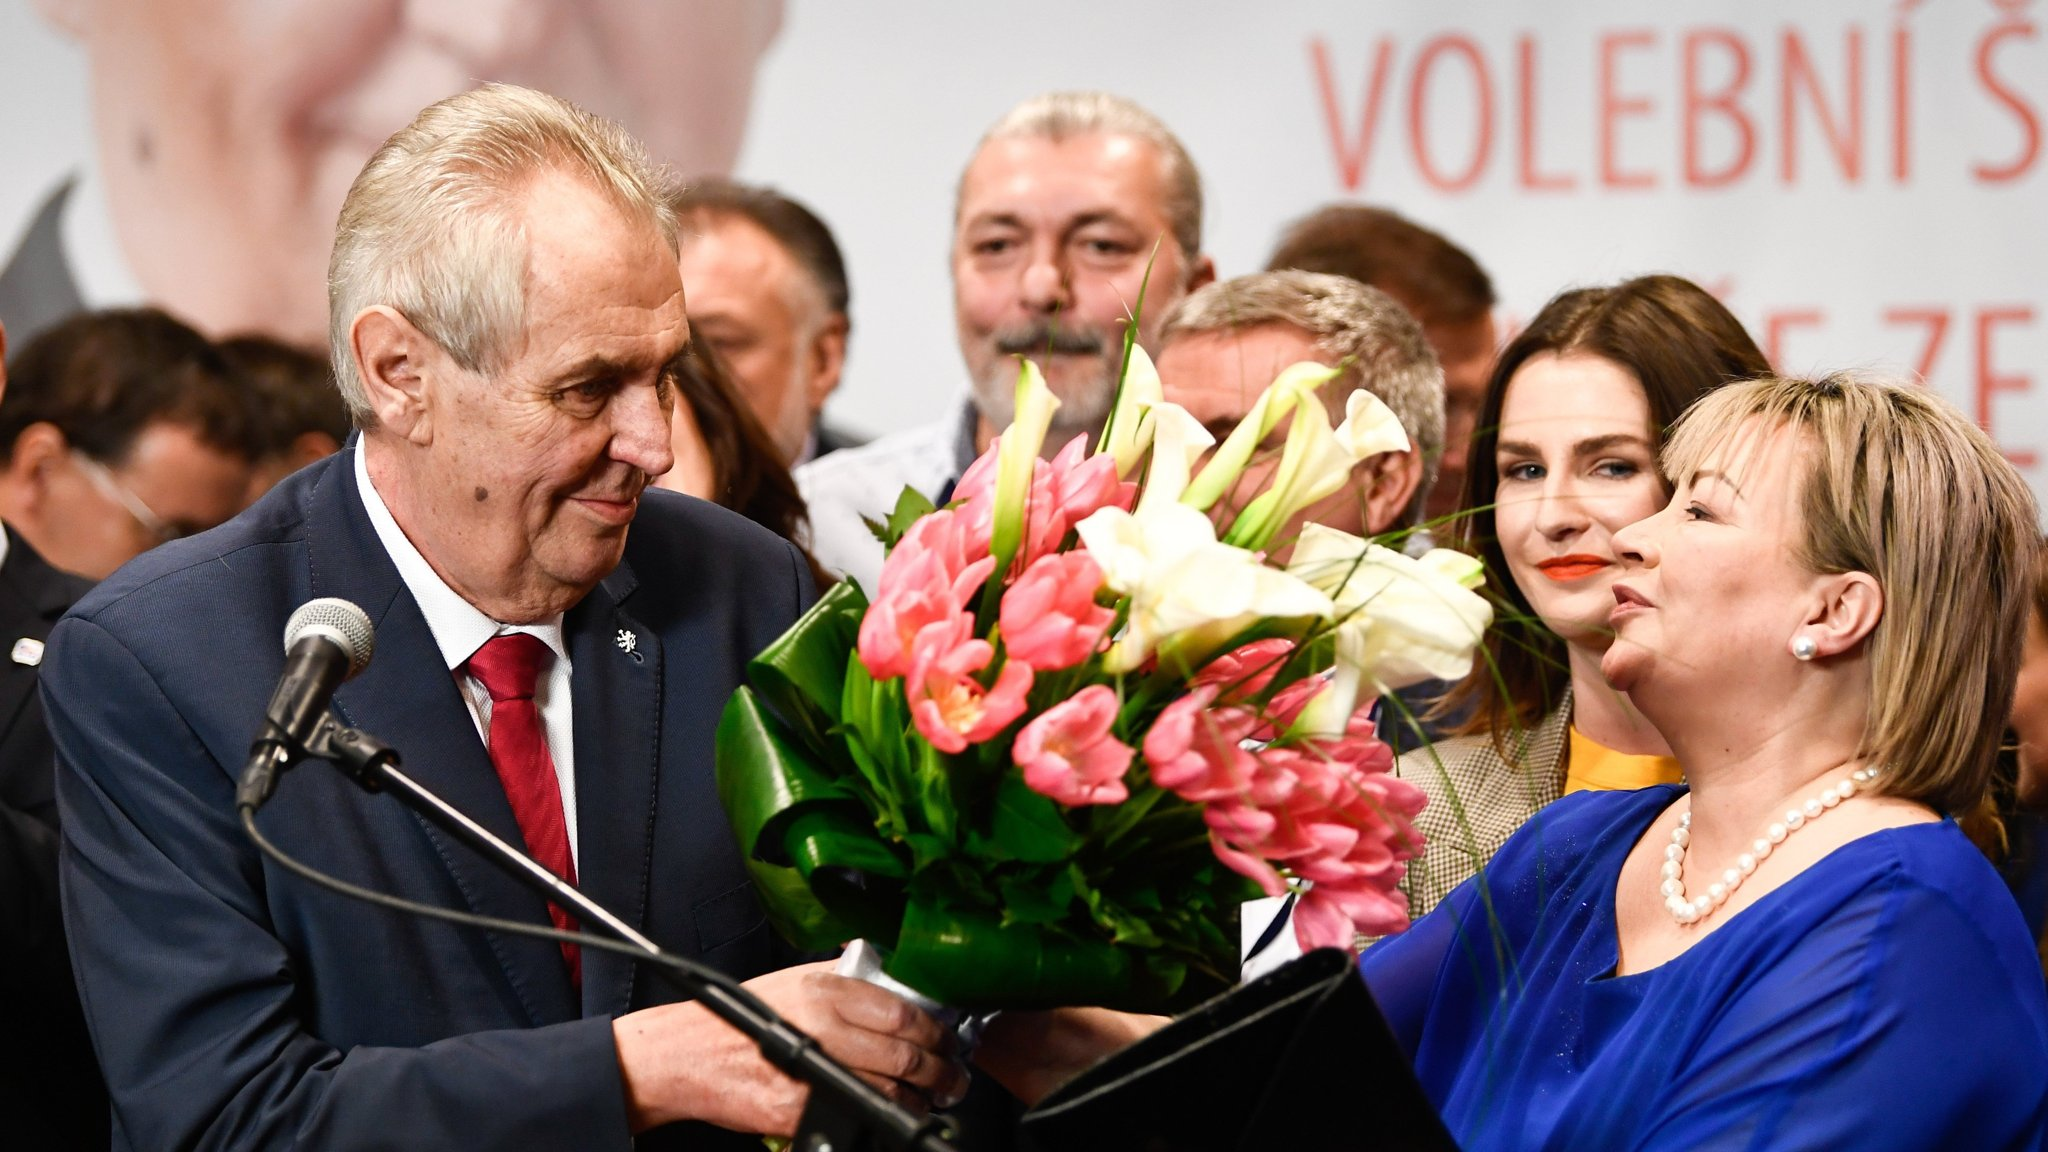 Milos Zeman wins second term as Czech president